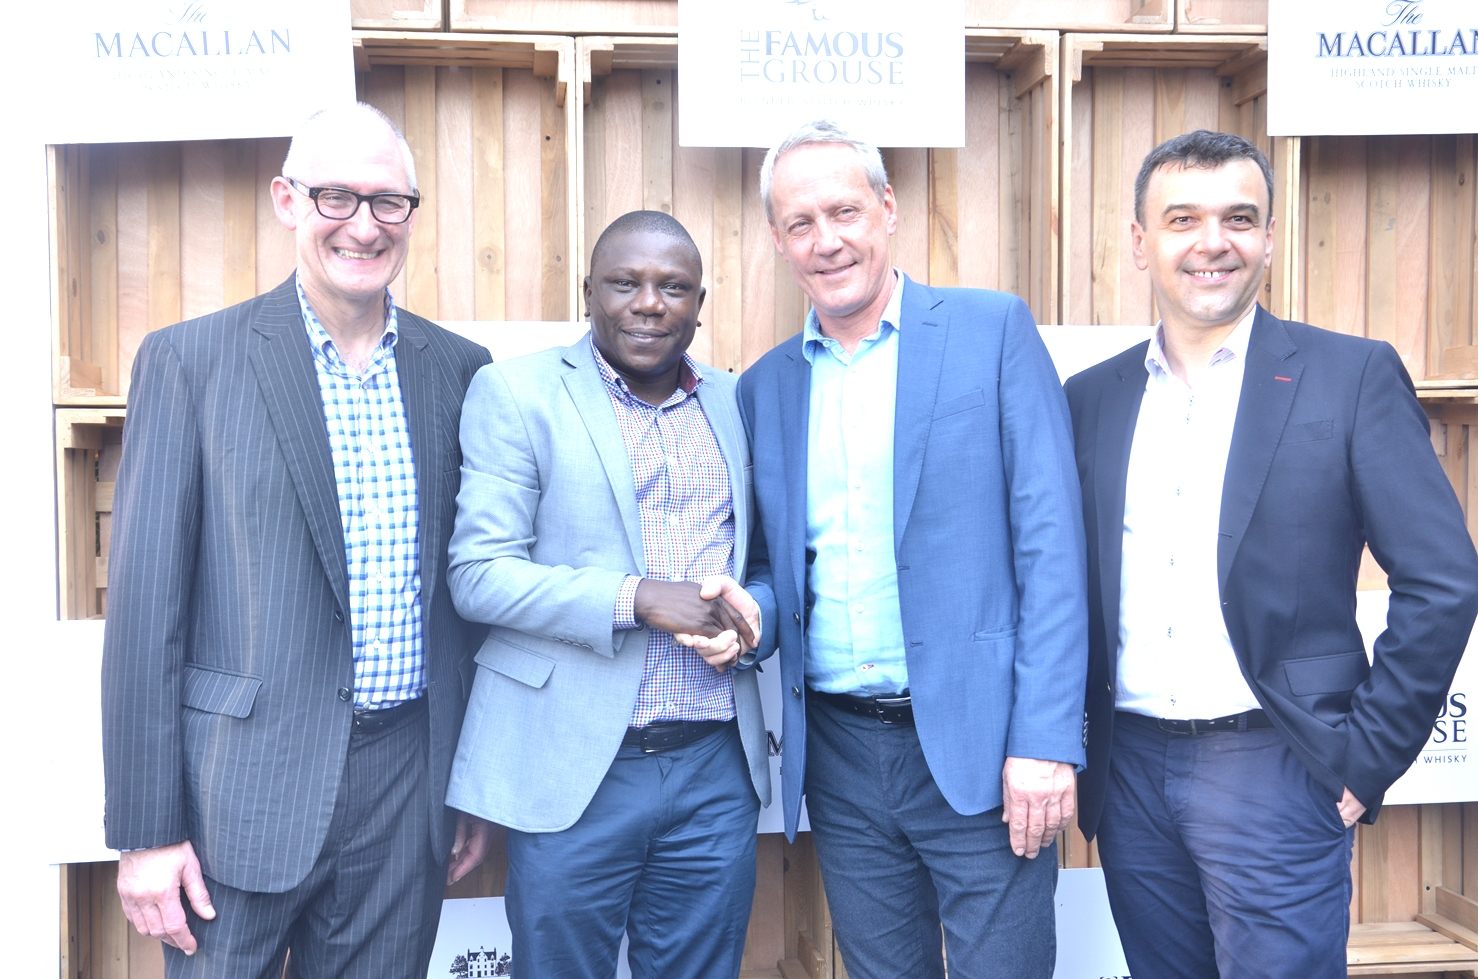 L-R, Mr. Ken Grier, Creative Director (Macallan), Edrington; Mr. Idowu Adedoyin, Director, Premium Spirit Nigeria; Mr. Derek Brown, Regional Director (Africa), Edrington and Mr. Dan Fratila, Sales Director, Nigerian Bottling Company Limited (NBC) during the Media Launch of Premium Spirit Nigeria in Lagos